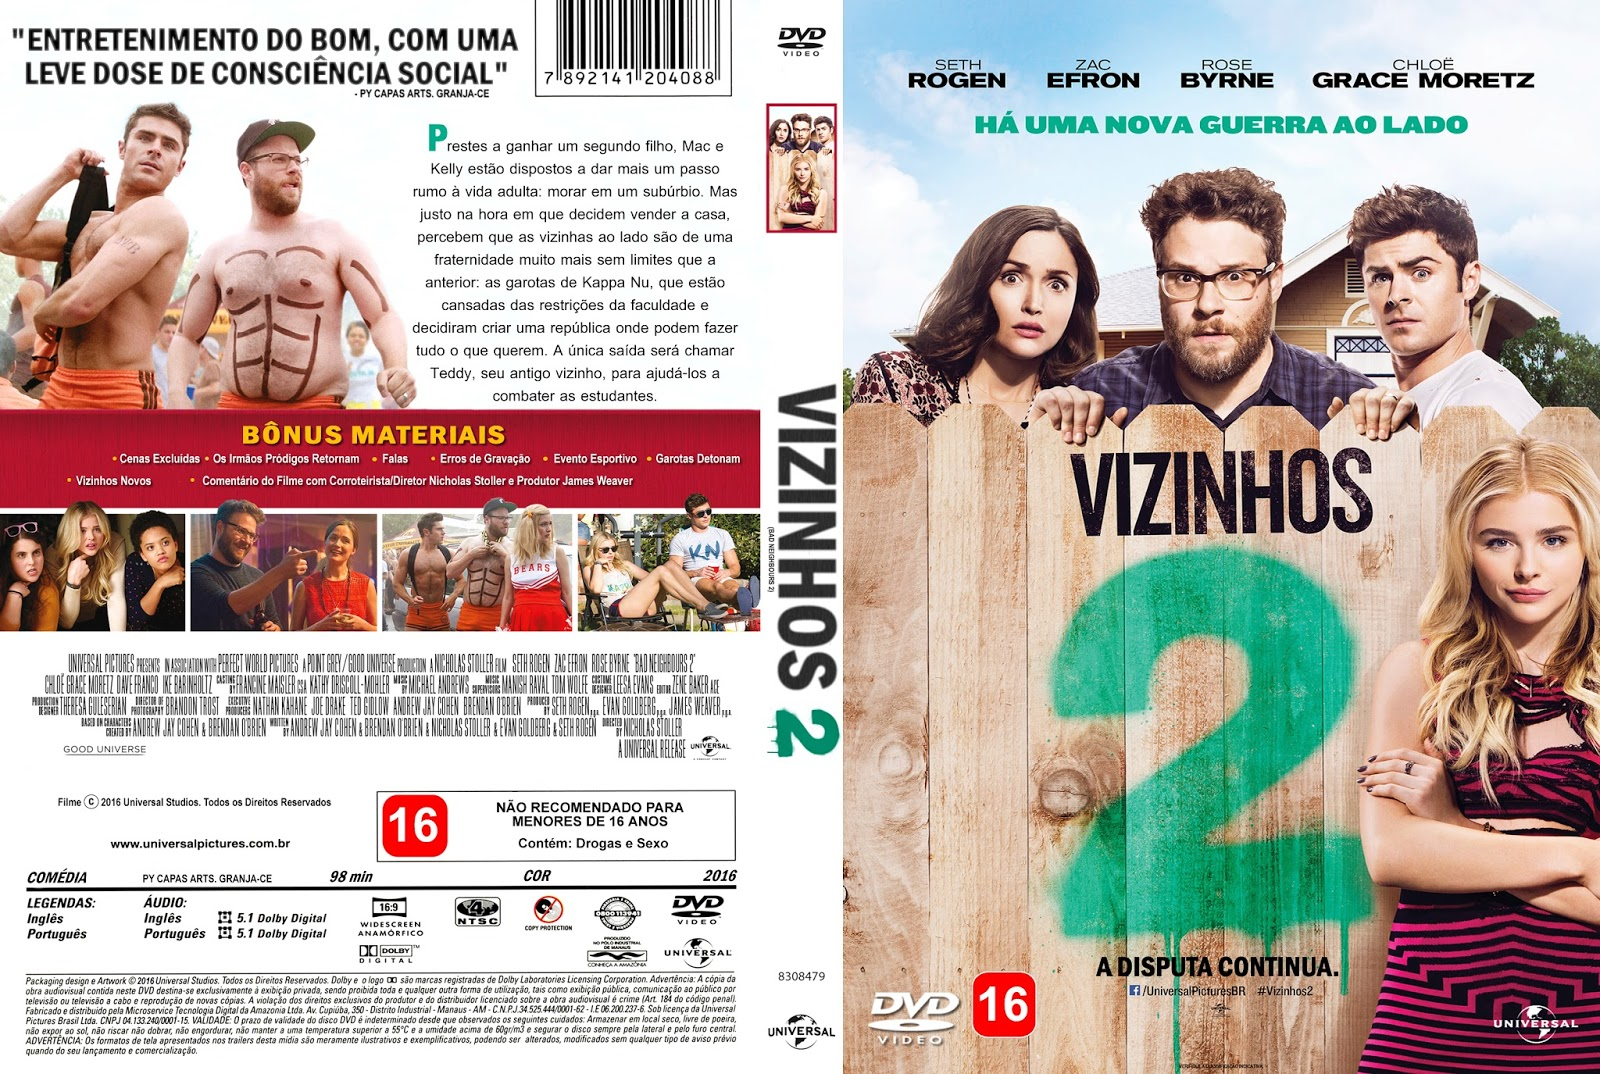 Vizinhos 2 DVD-R Vizinhos 2 DVD-R VIZINHOS 2B2 2B  2BCUSTOM 2BPYPY 2BCDS 2BE 2BDVDS 2B